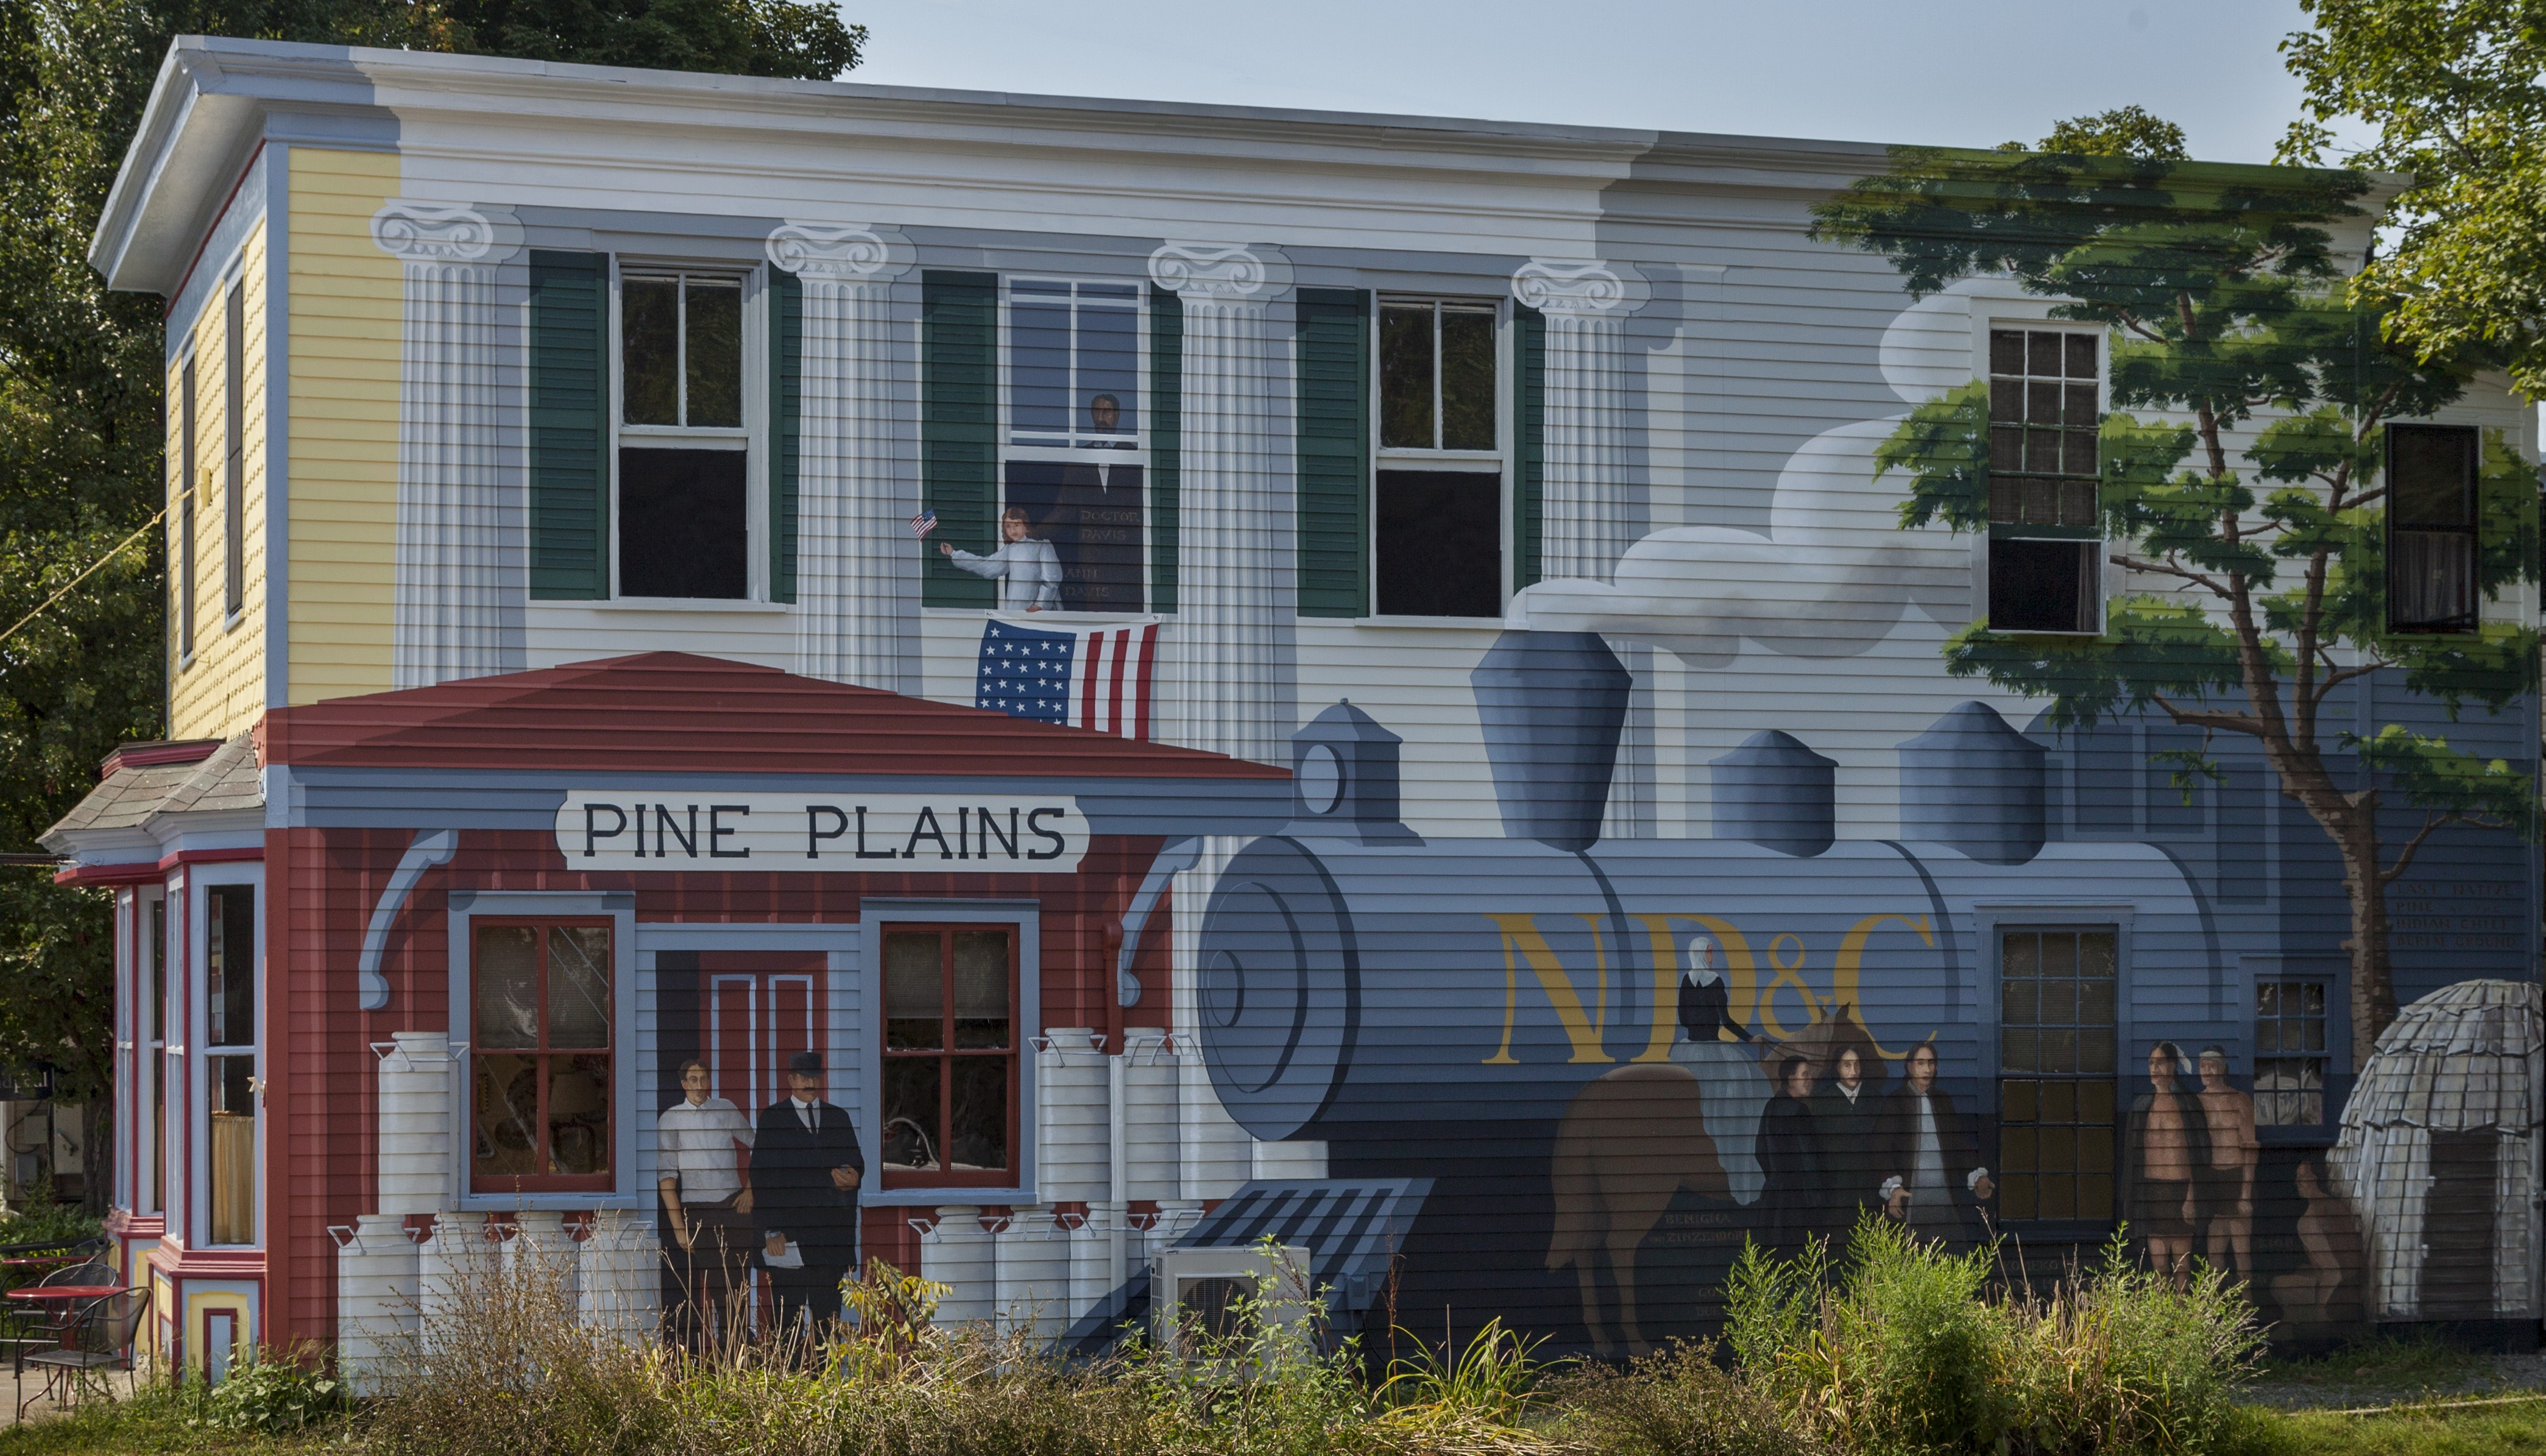 Pine Plains Business Association Pine Plains Business Association: To encourage, promote, support and advocate for local businesses in Pine Plains while maintaining the small historic community atmosphere.